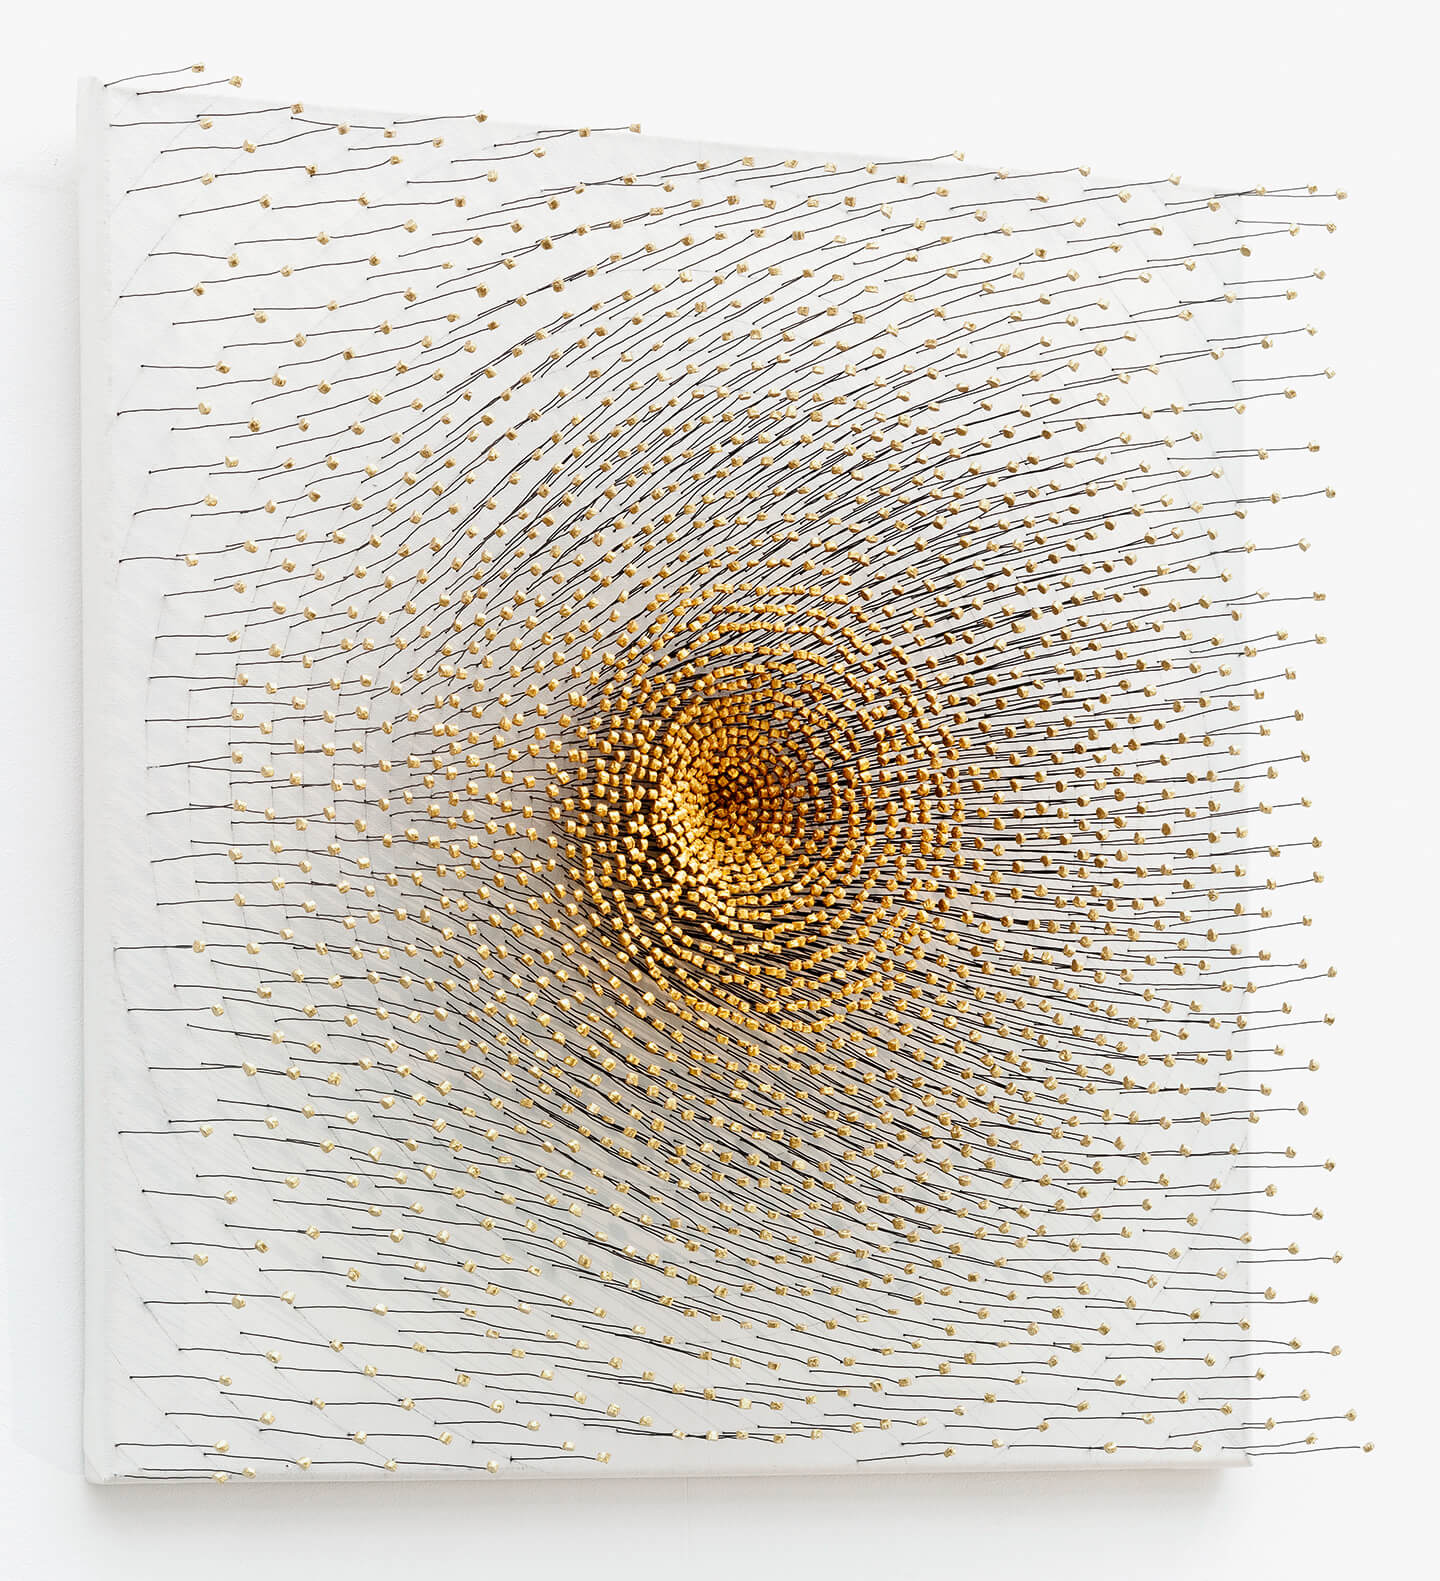 Soul, 2014, bottle corks, wire, acrylic paint on canvas